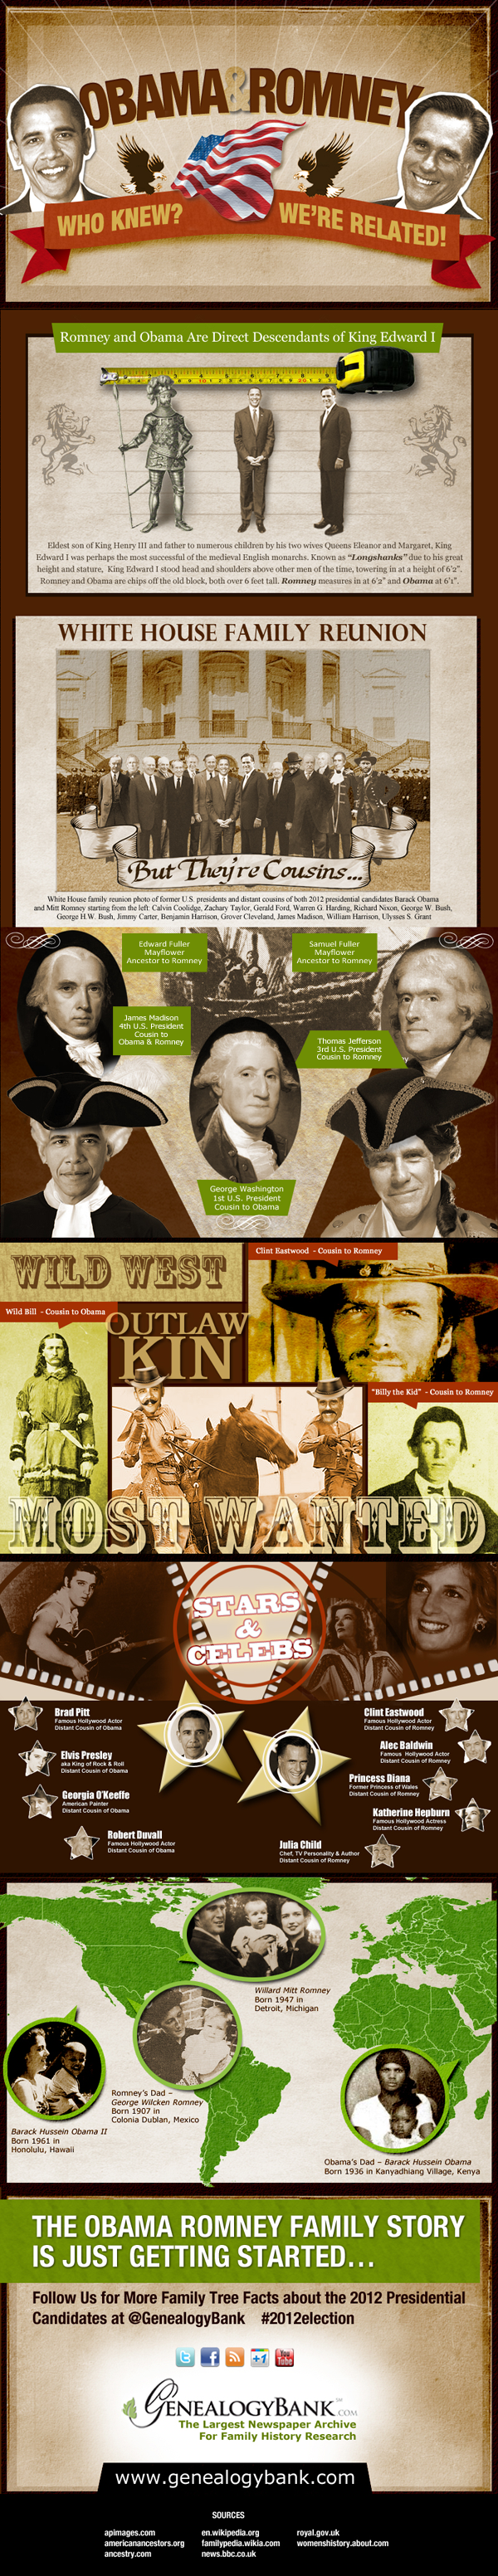 Obama & Romney - Who Knew? We're Related! Genealogy Infographic